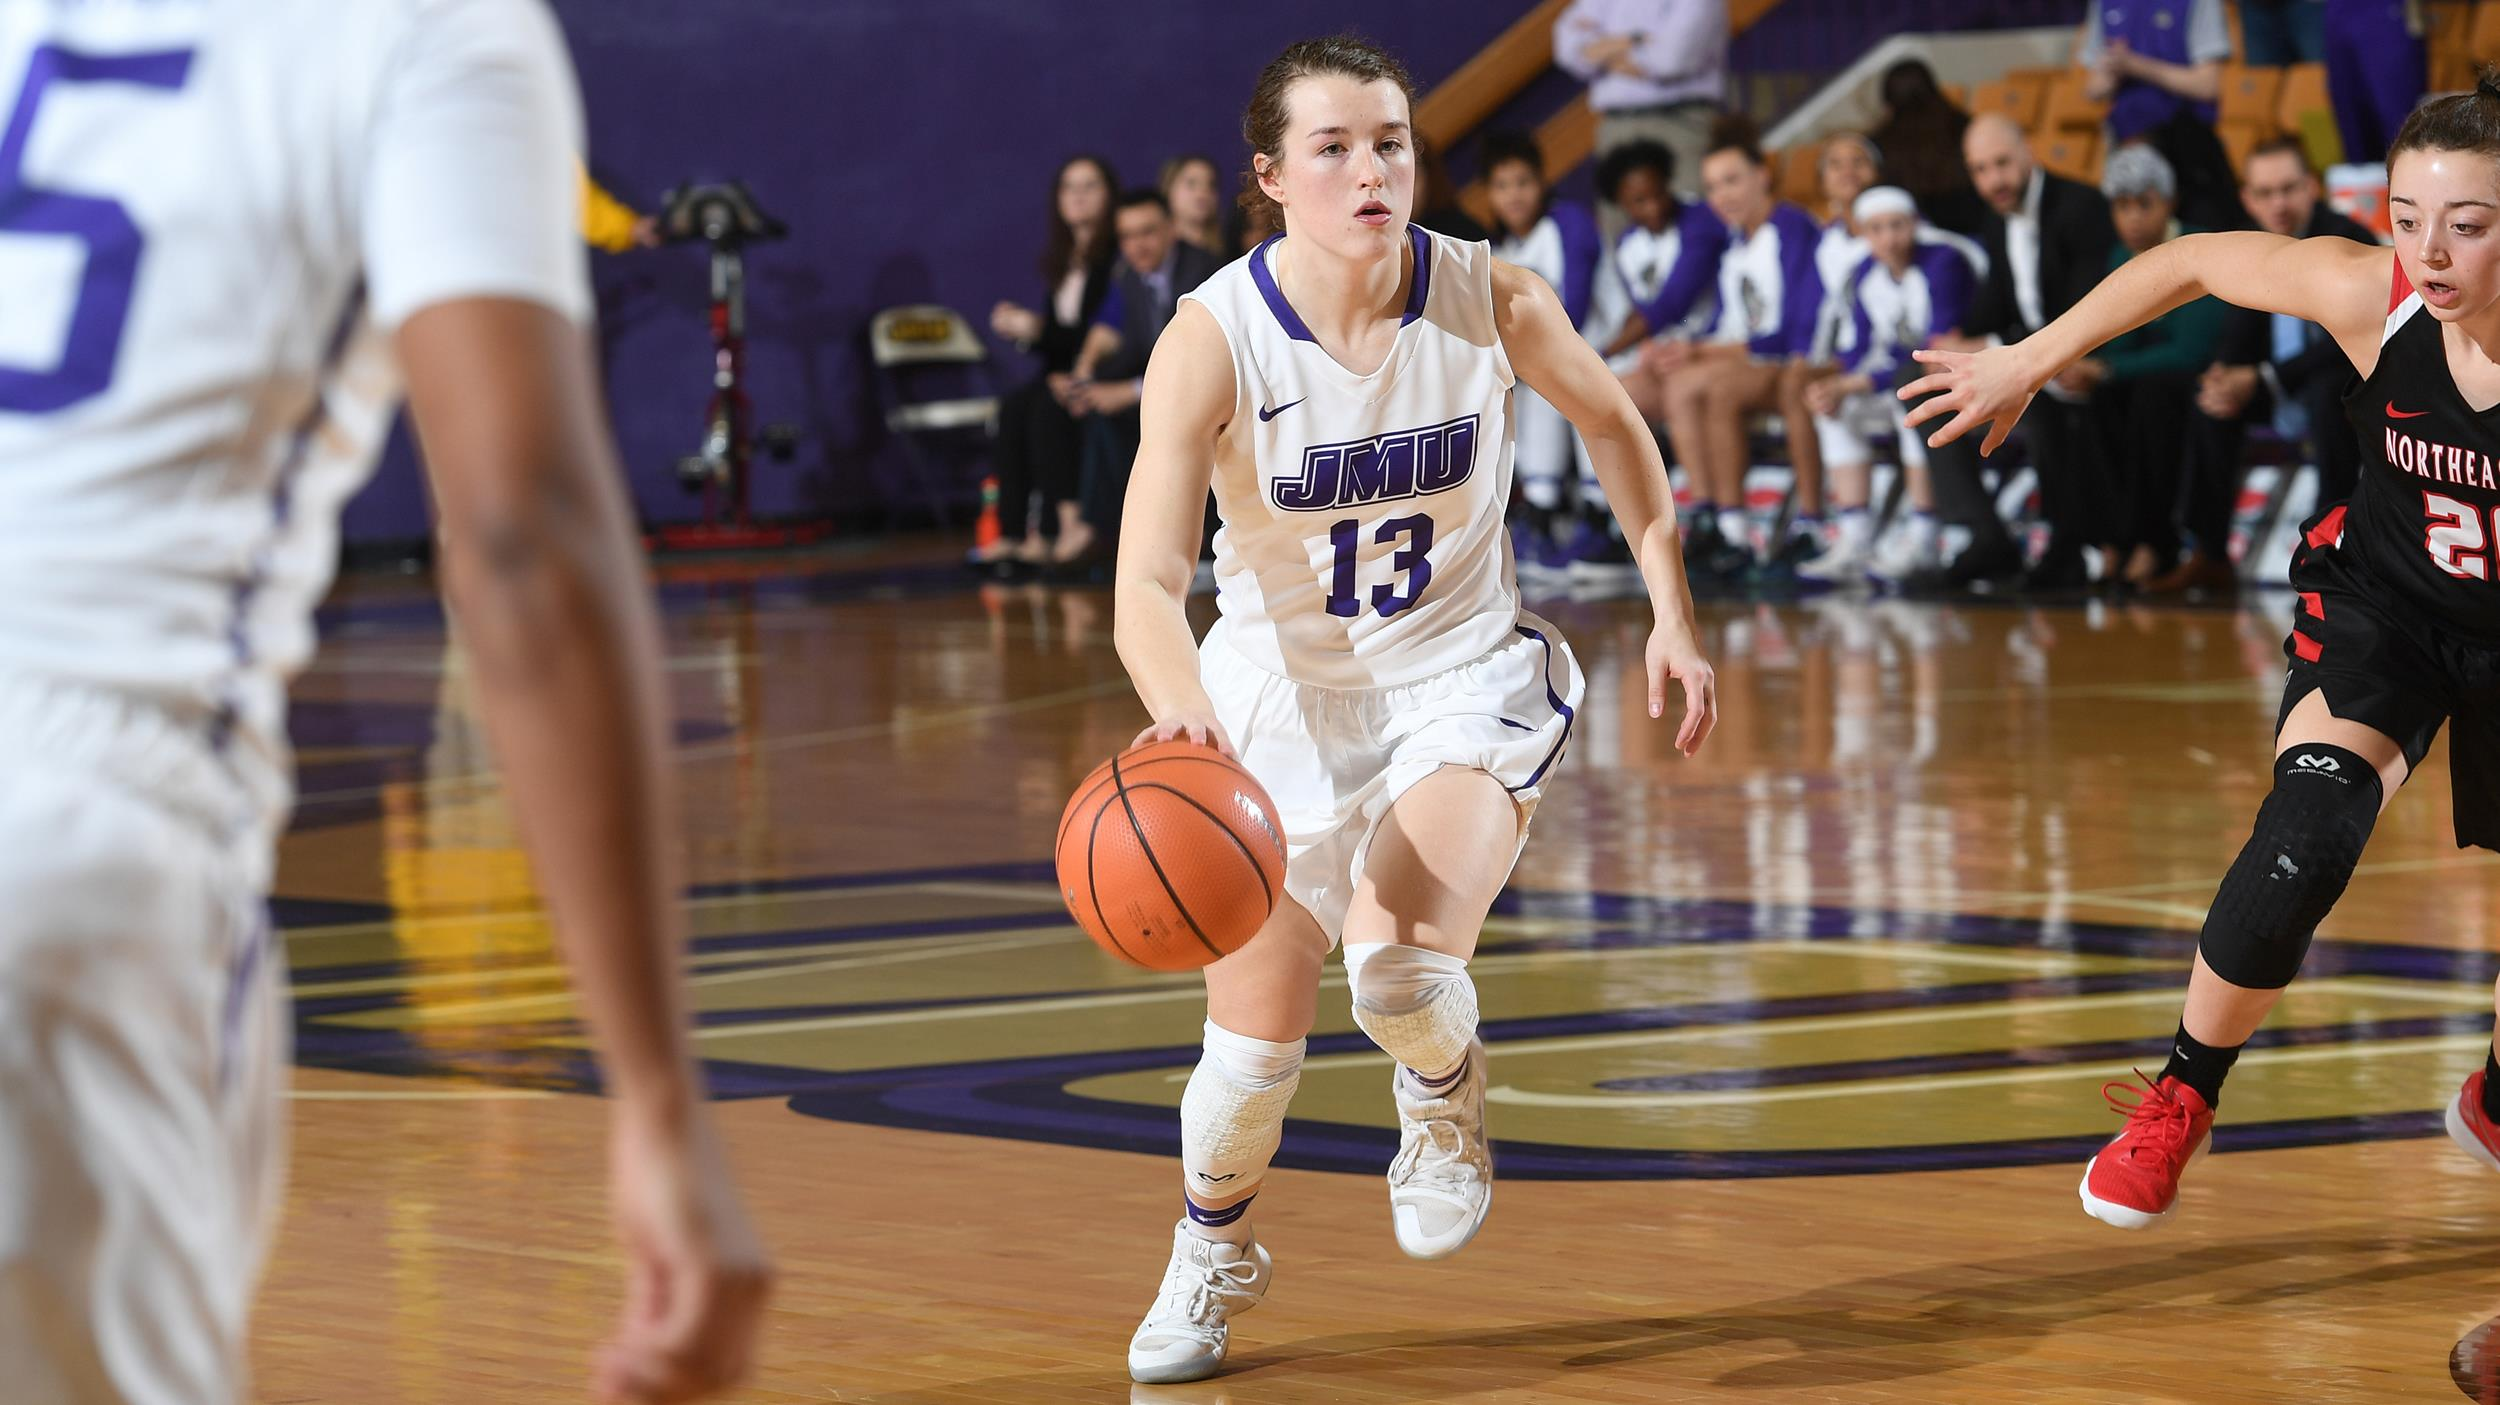 Women's Basketball: Dukes Fend Off Blue Hens for 56-53 Victory)